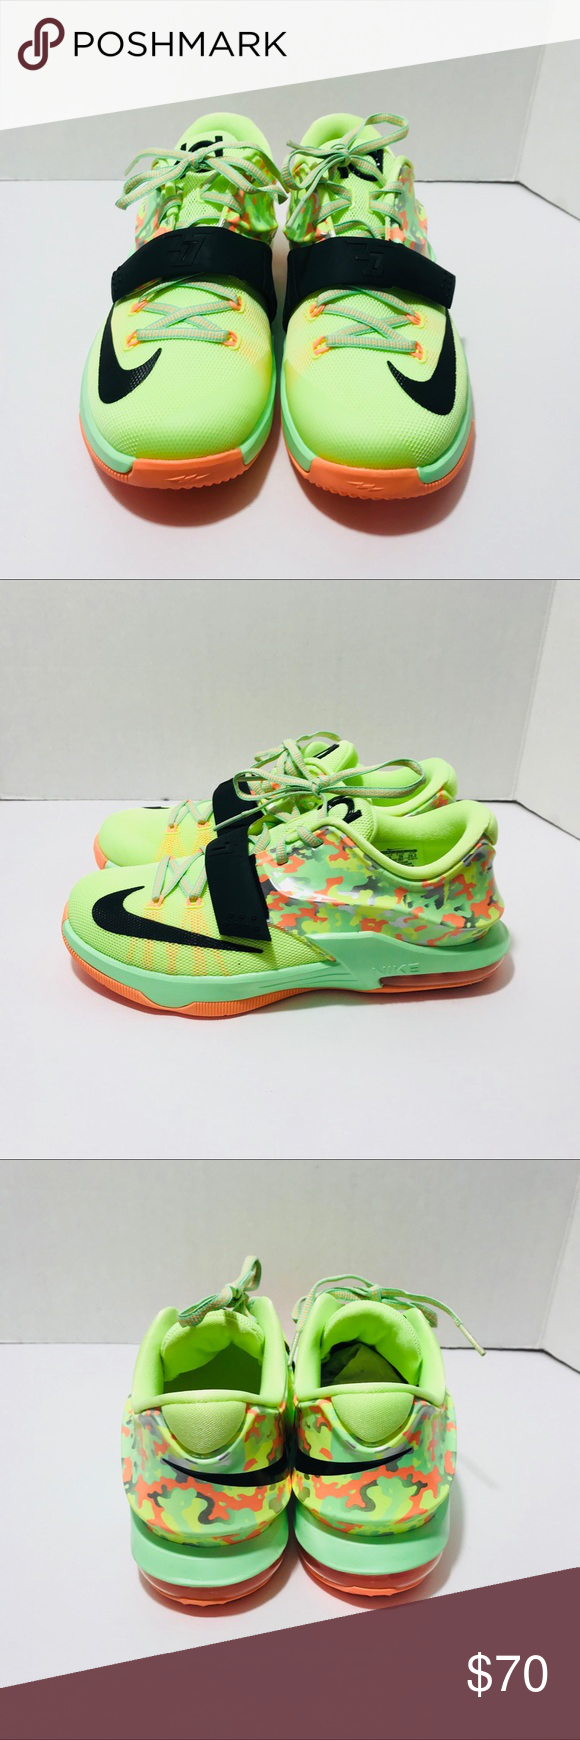 online store 07a73 271f7 ... get nike kevin durant kd 7 easter shoes kids kd 7 easter size 6.5y only